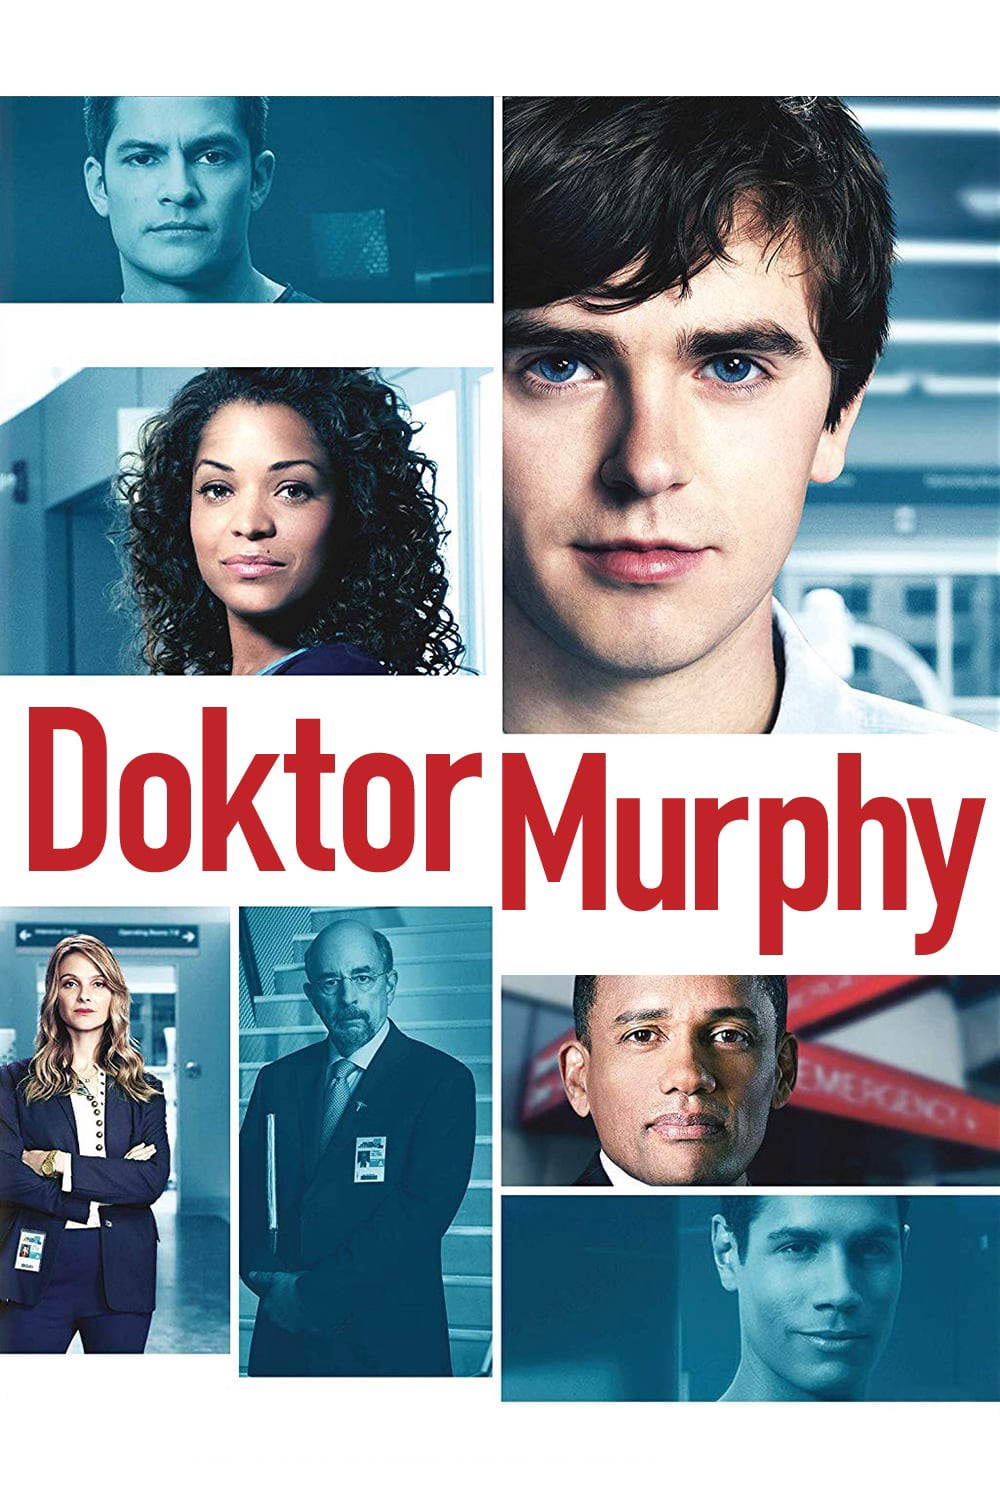 The Good Doctor Saison 3 Streaming Vostfr : doctor, saison, streaming, vostfr, Doctor, Saison, Épisode, Streaming, [Vostfr], Erika, Liebenberc, Medium